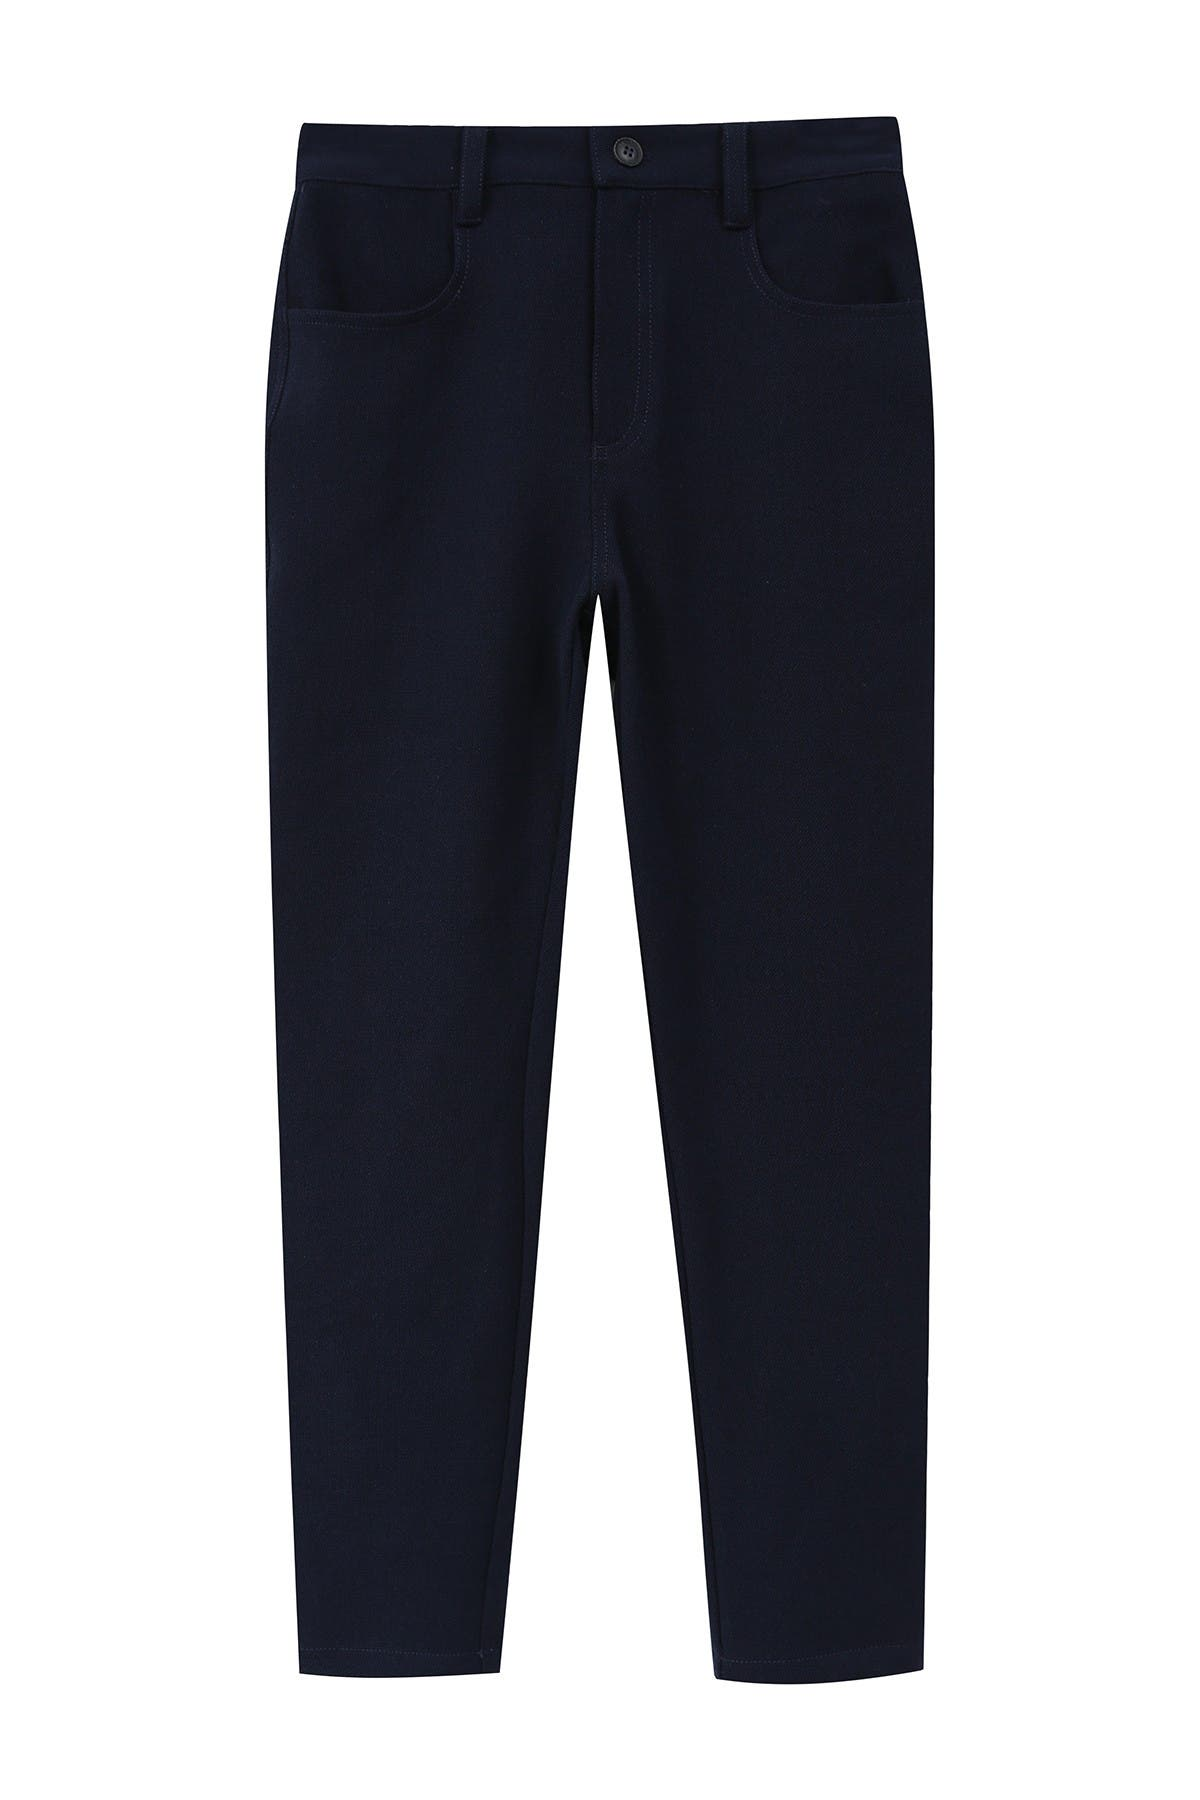 Image of FRNCH Everyday Structured Pant